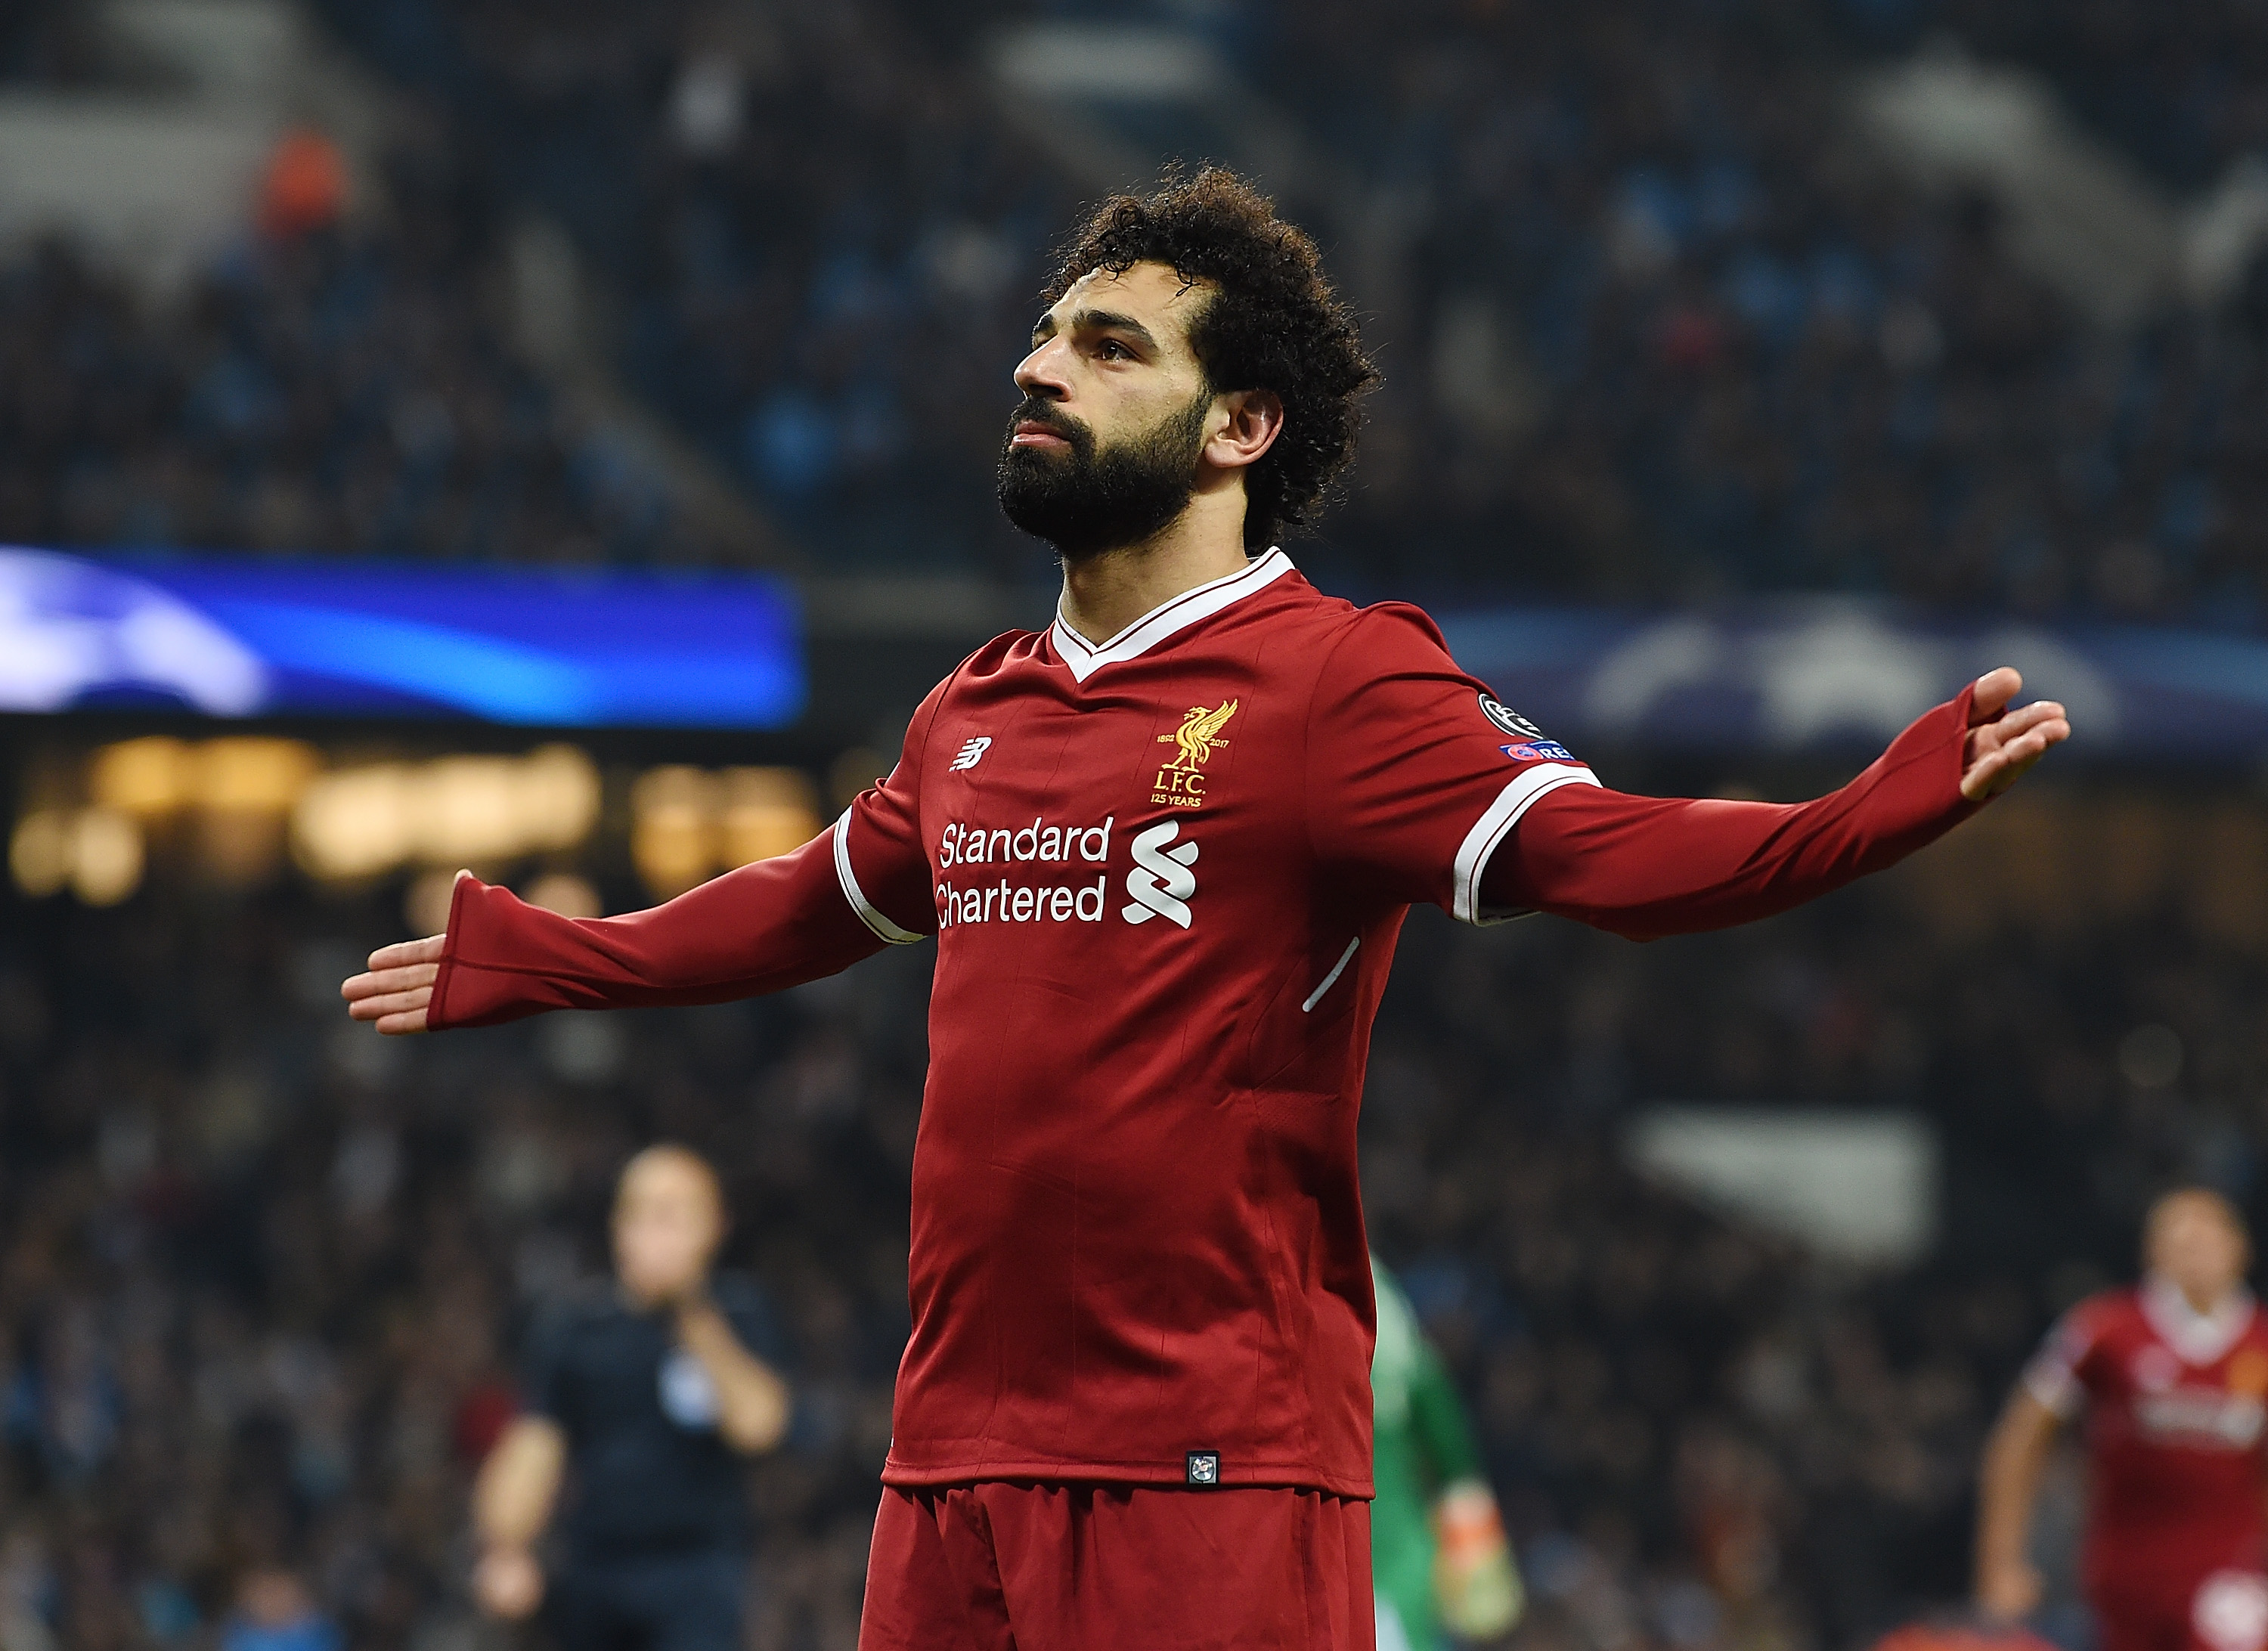 1298cdf5a67 Soccer star Mo Salah s massive popularity is changing perceptions of  Muslims in the UK